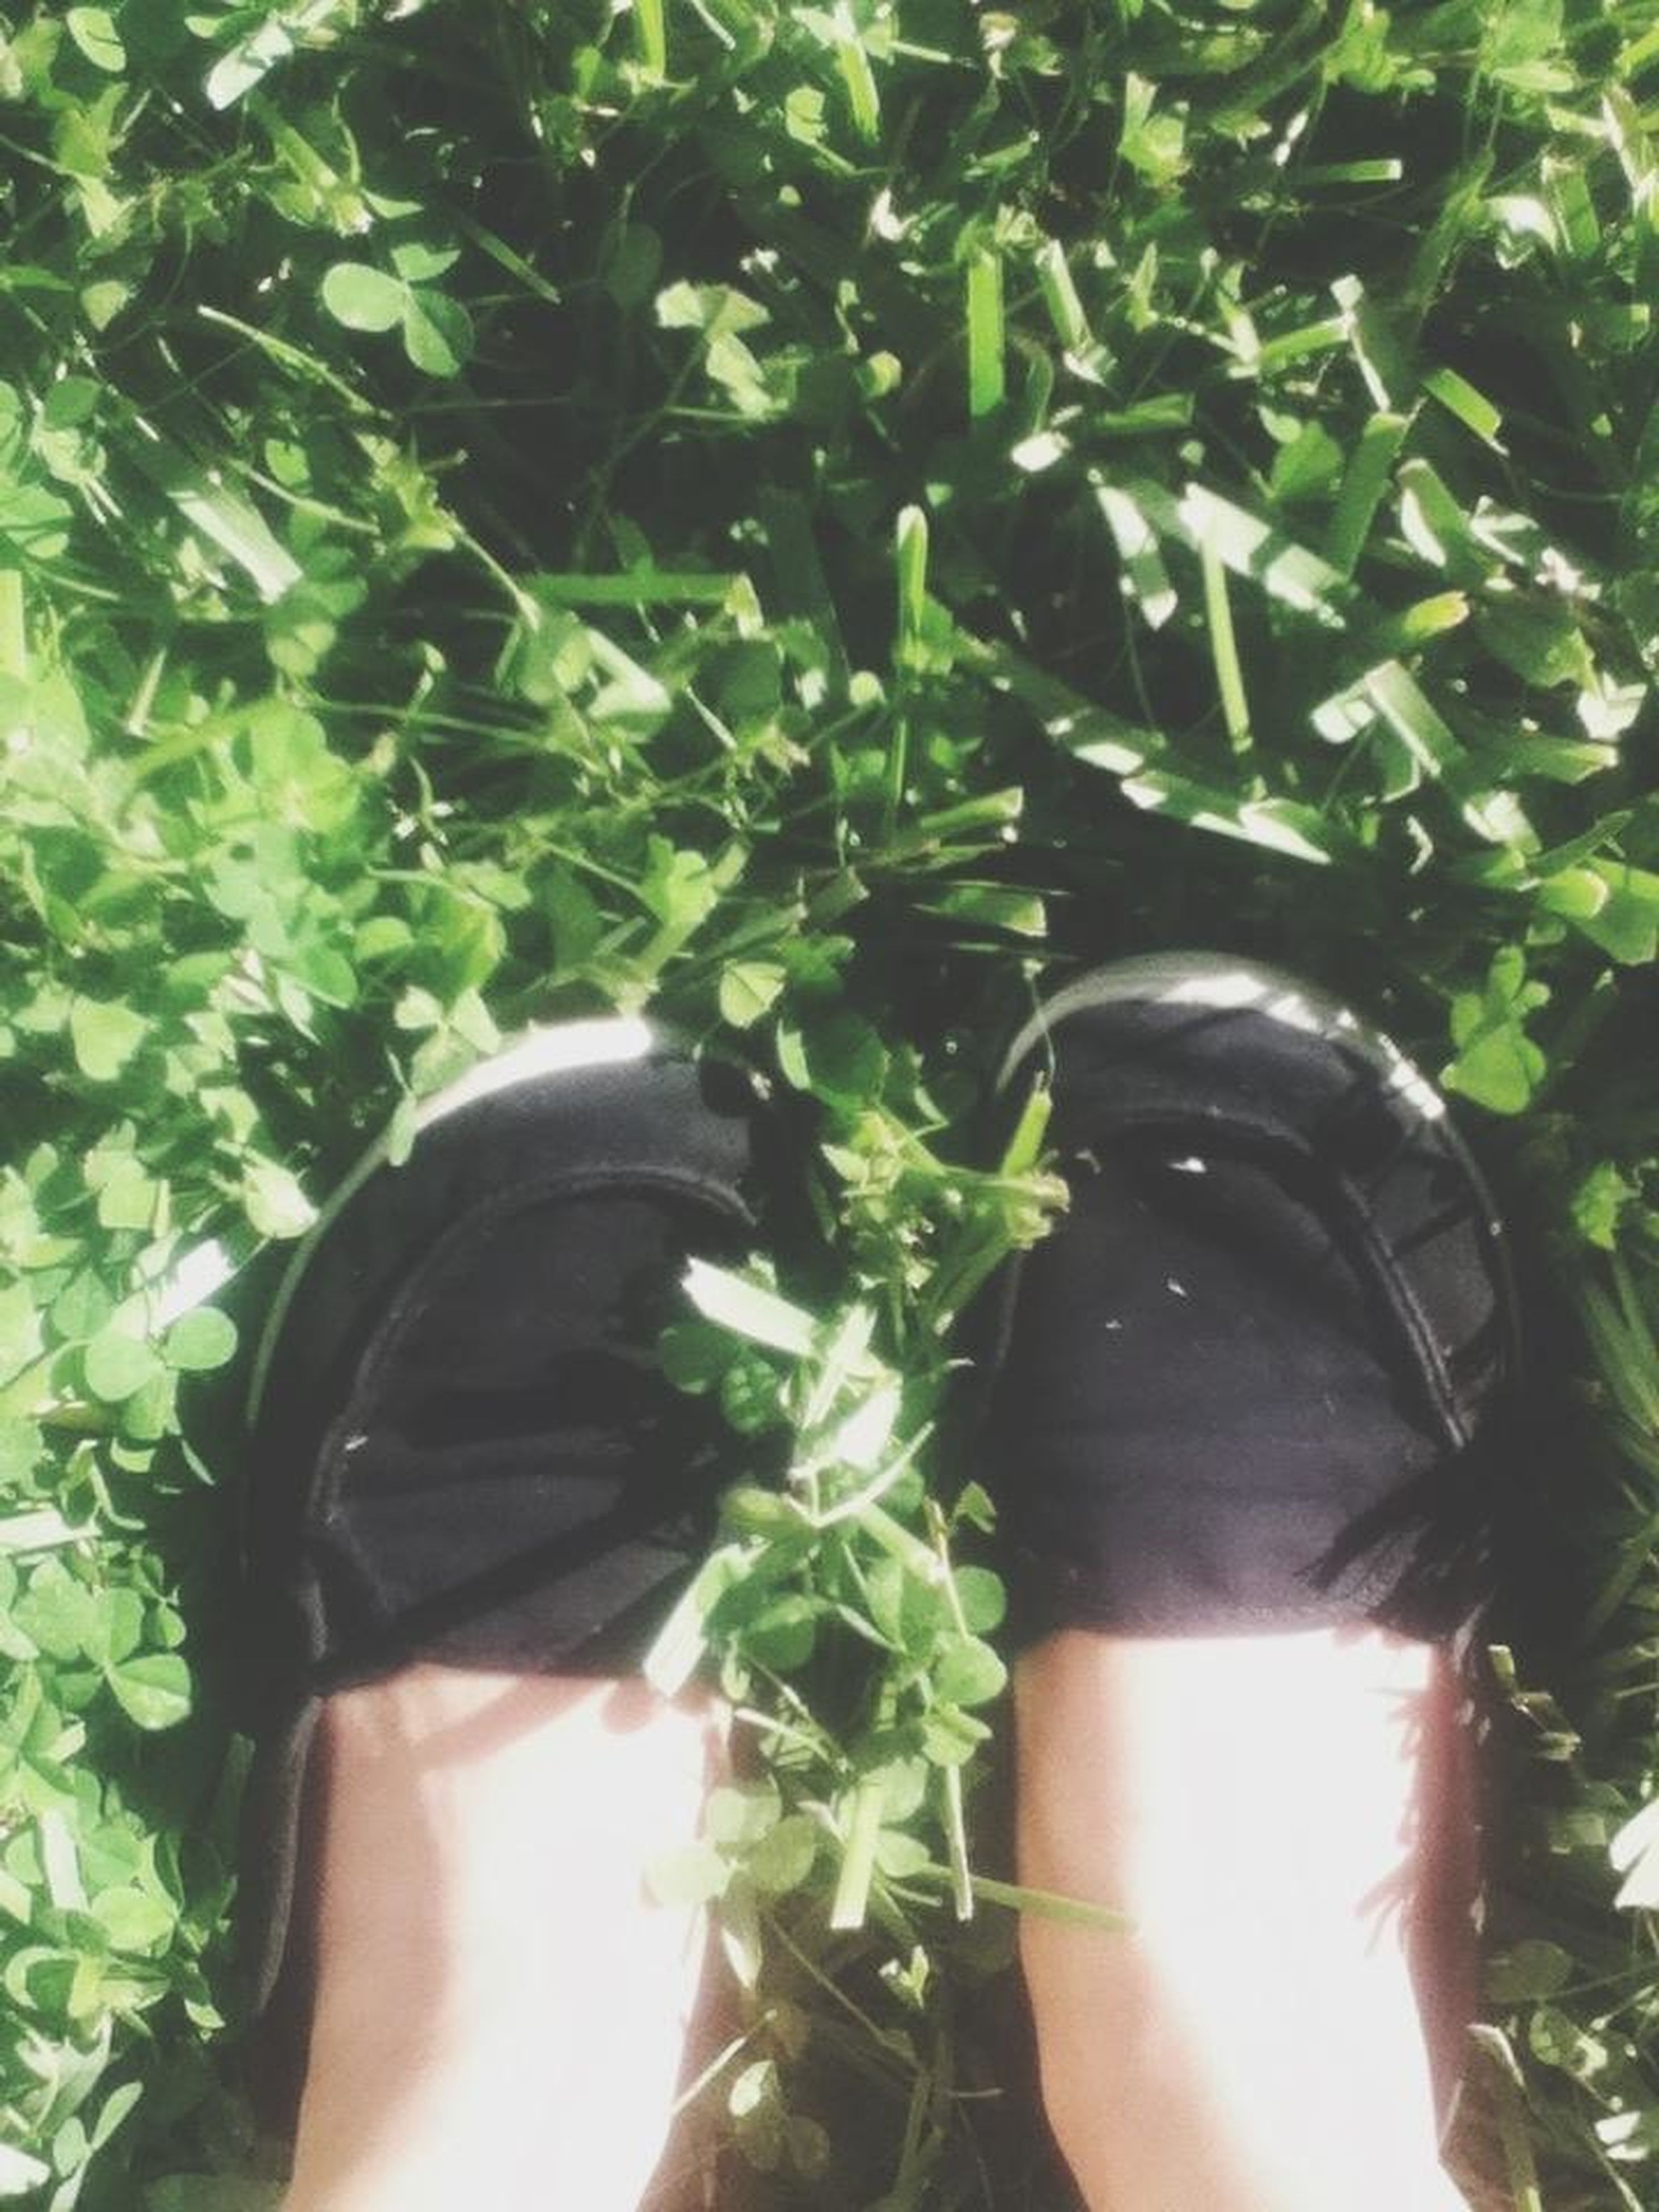 leaf, plant, green color, growth, personal perspective, nature, close-up, shoe, high angle view, sunlight, day, part of, outdoors, green, beauty in nature, lifestyles, unrecognizable person